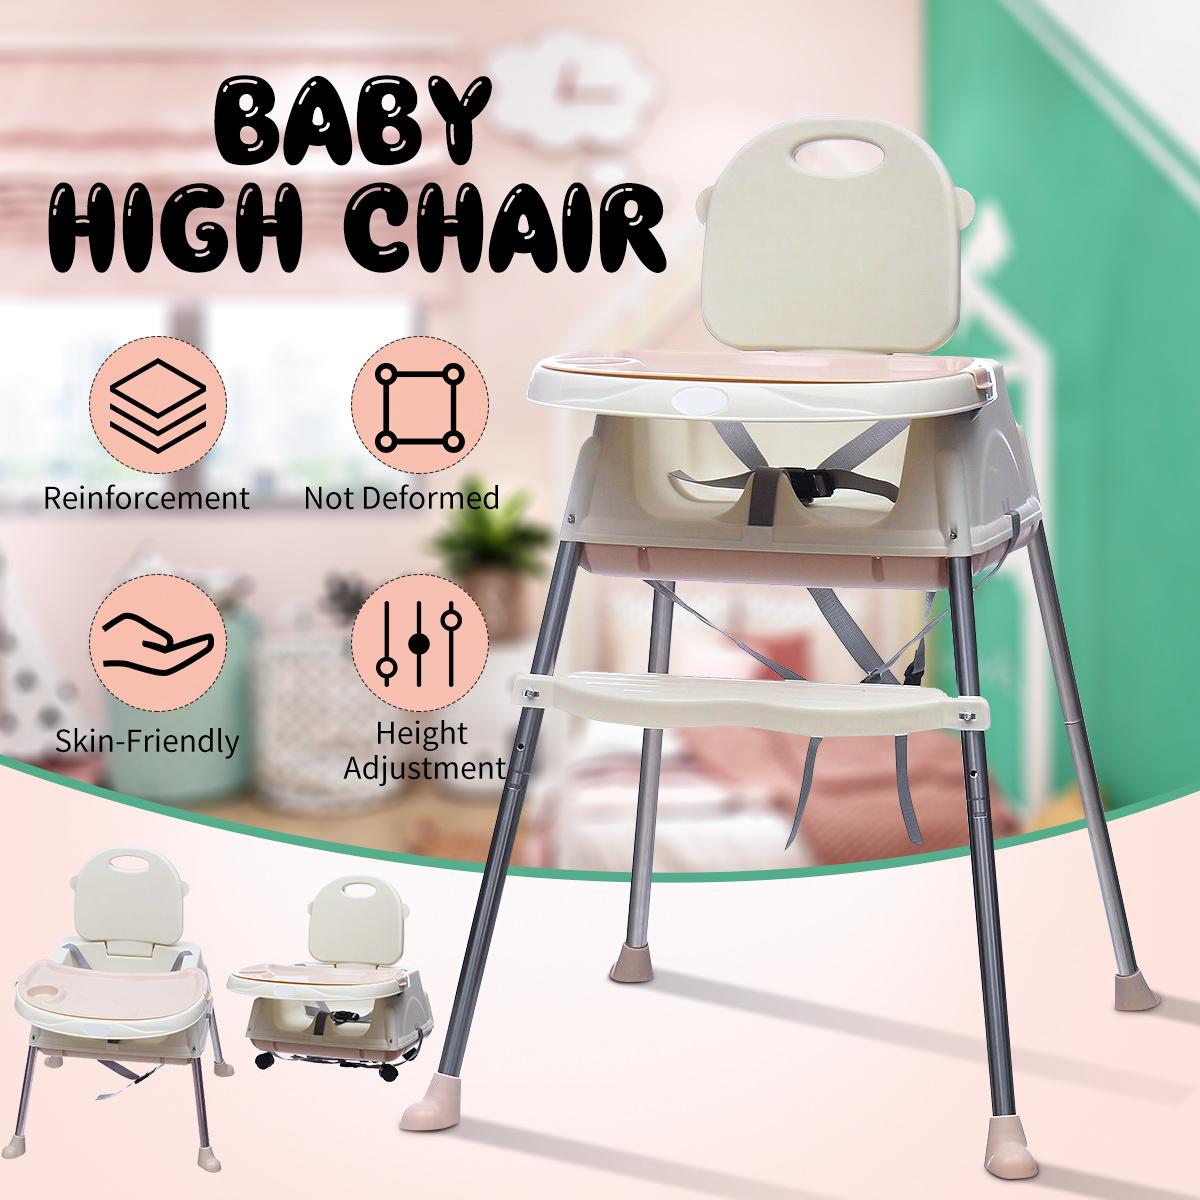 Baby High Feeding Chair Portable Kids Table Foldable Dining Chair Adjustable Height Multifunctional Food Chair With Wheels